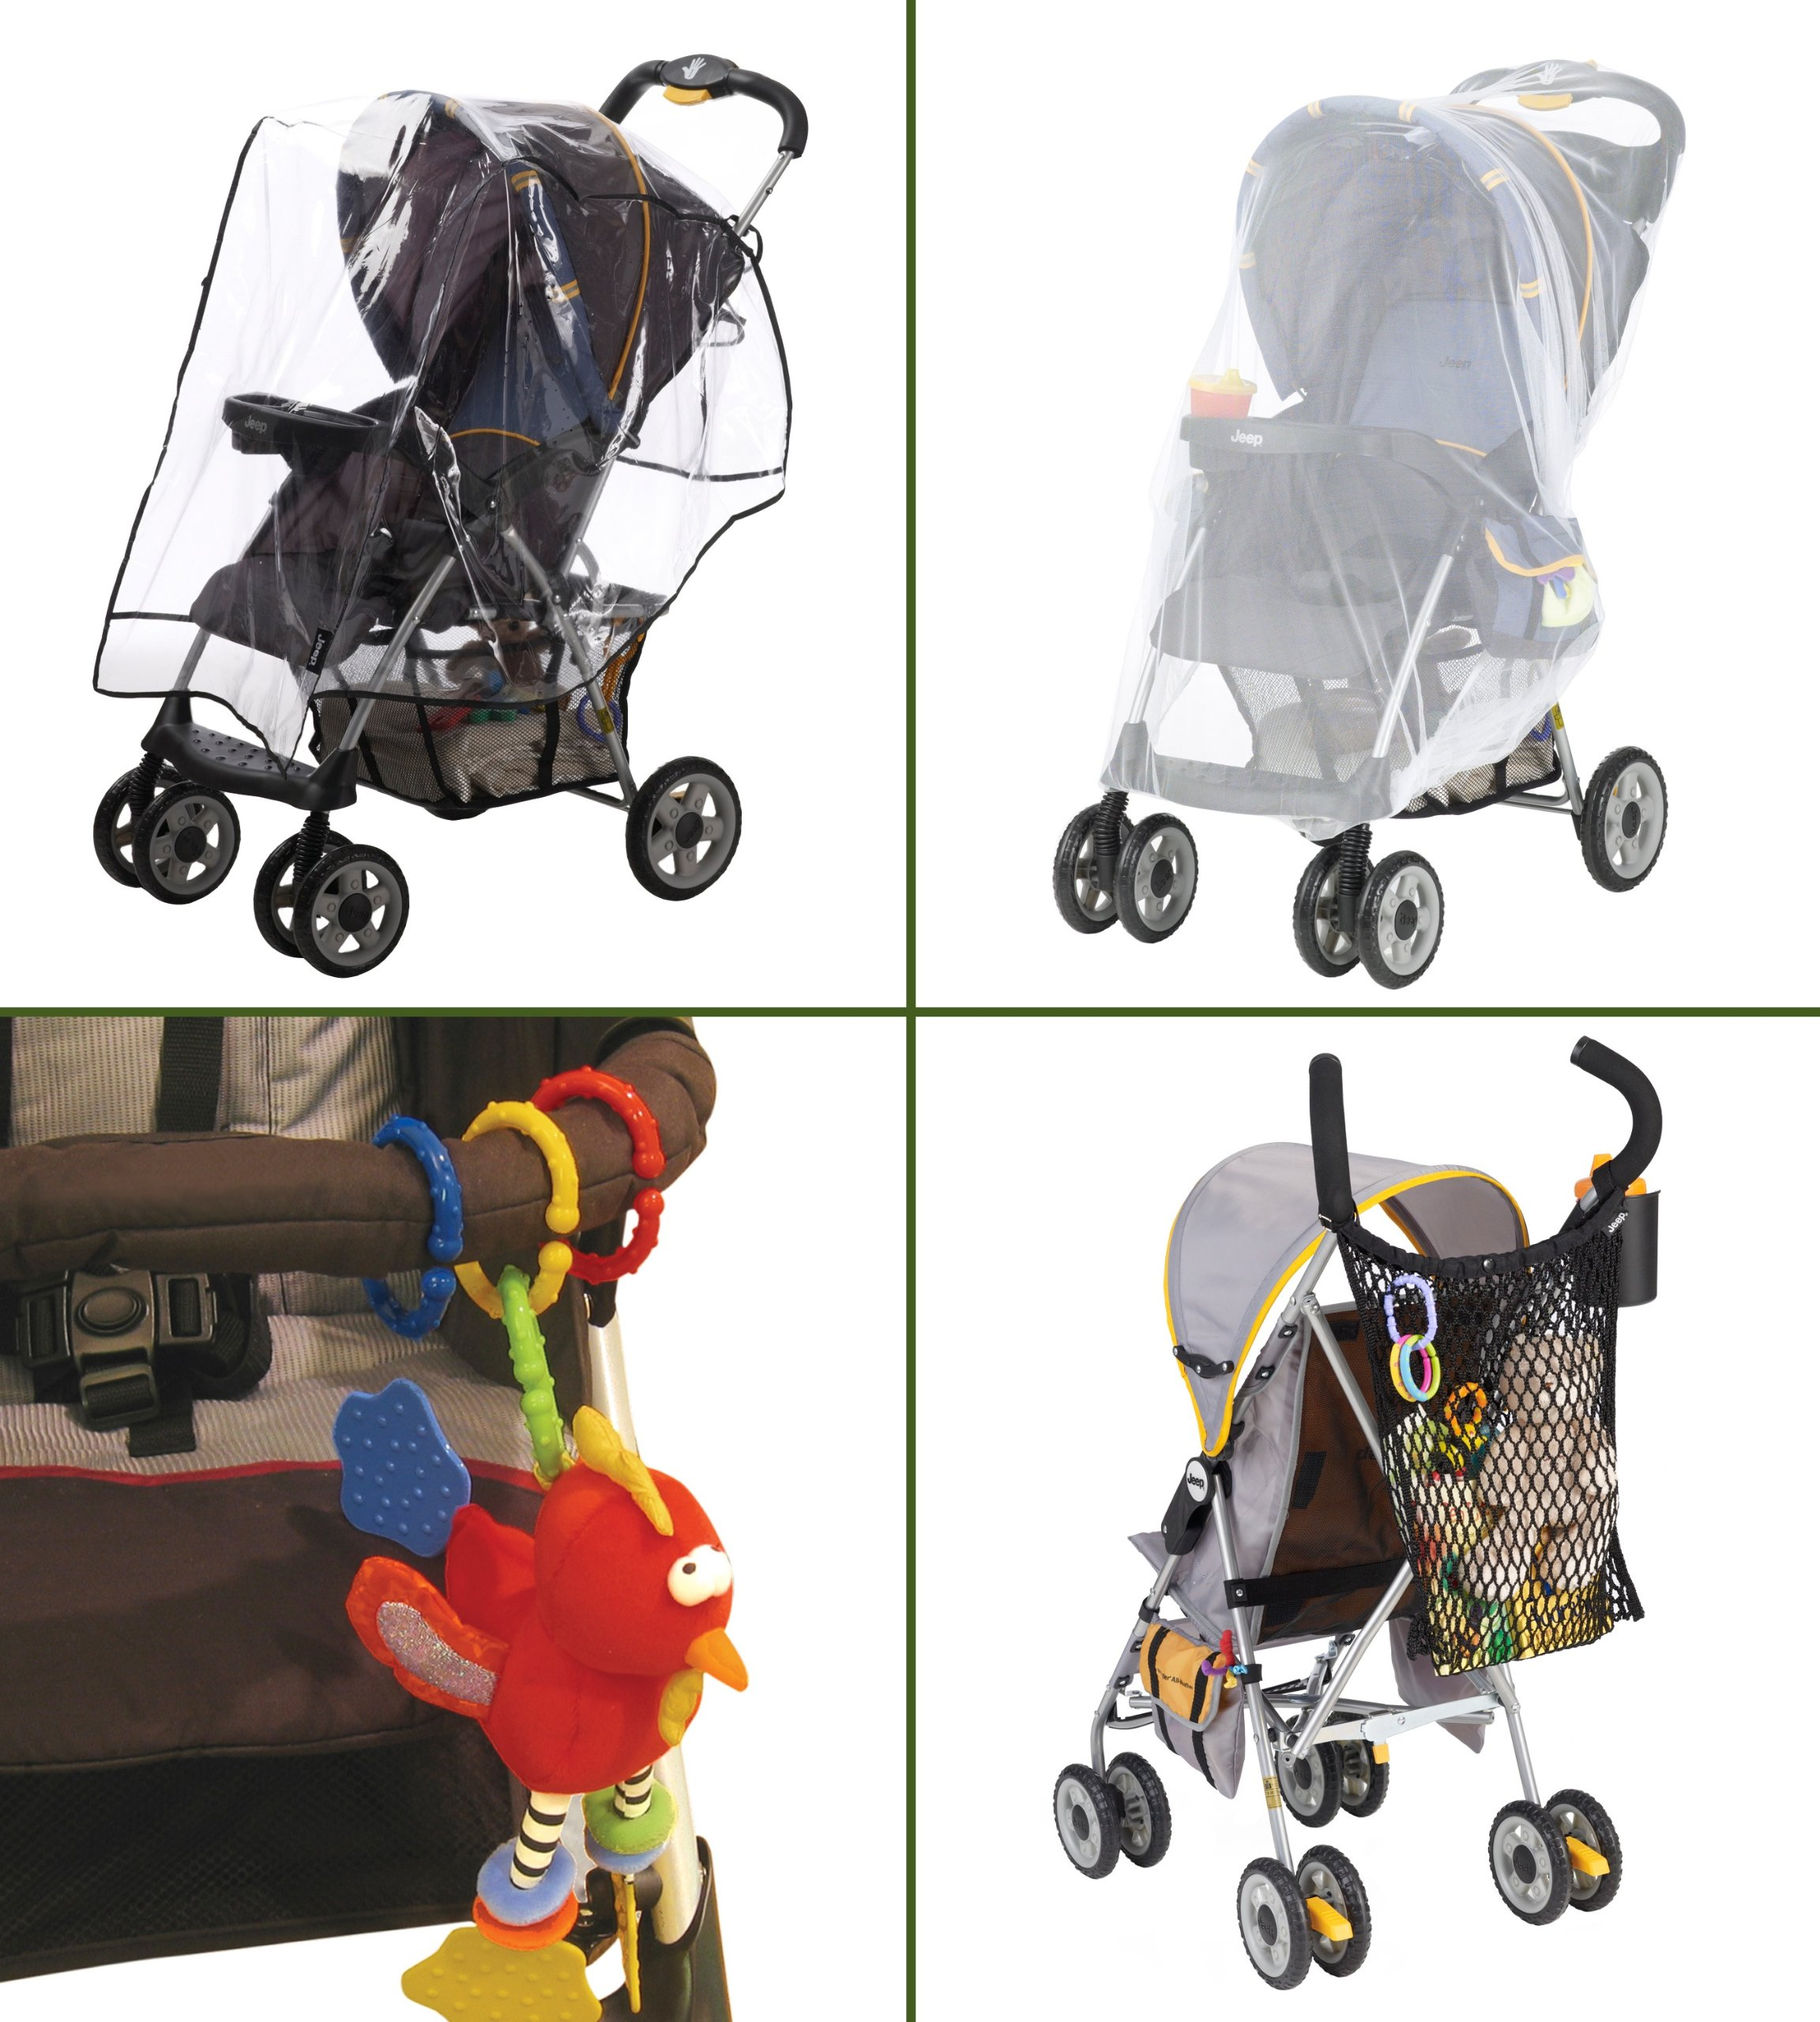 J is for Jeep Stroller Essential Accessories Starter Kit by Jeep (Image #1)